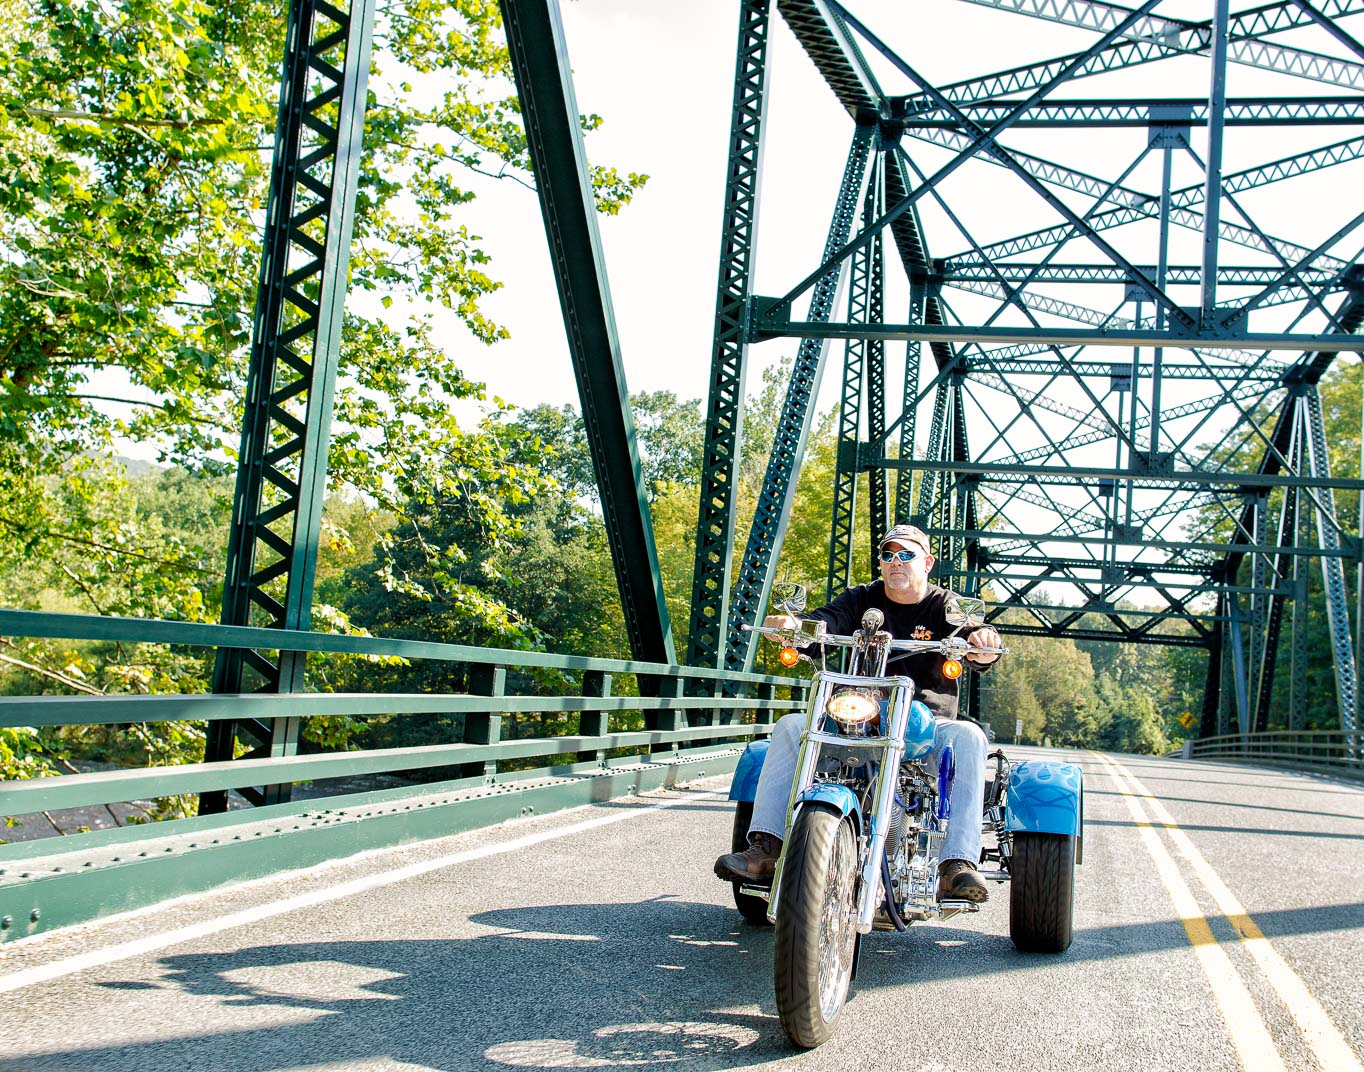 Connecticut man with Multiple Sclerosis rides modified three wheeled motorcycle over countty bridge on sunny day